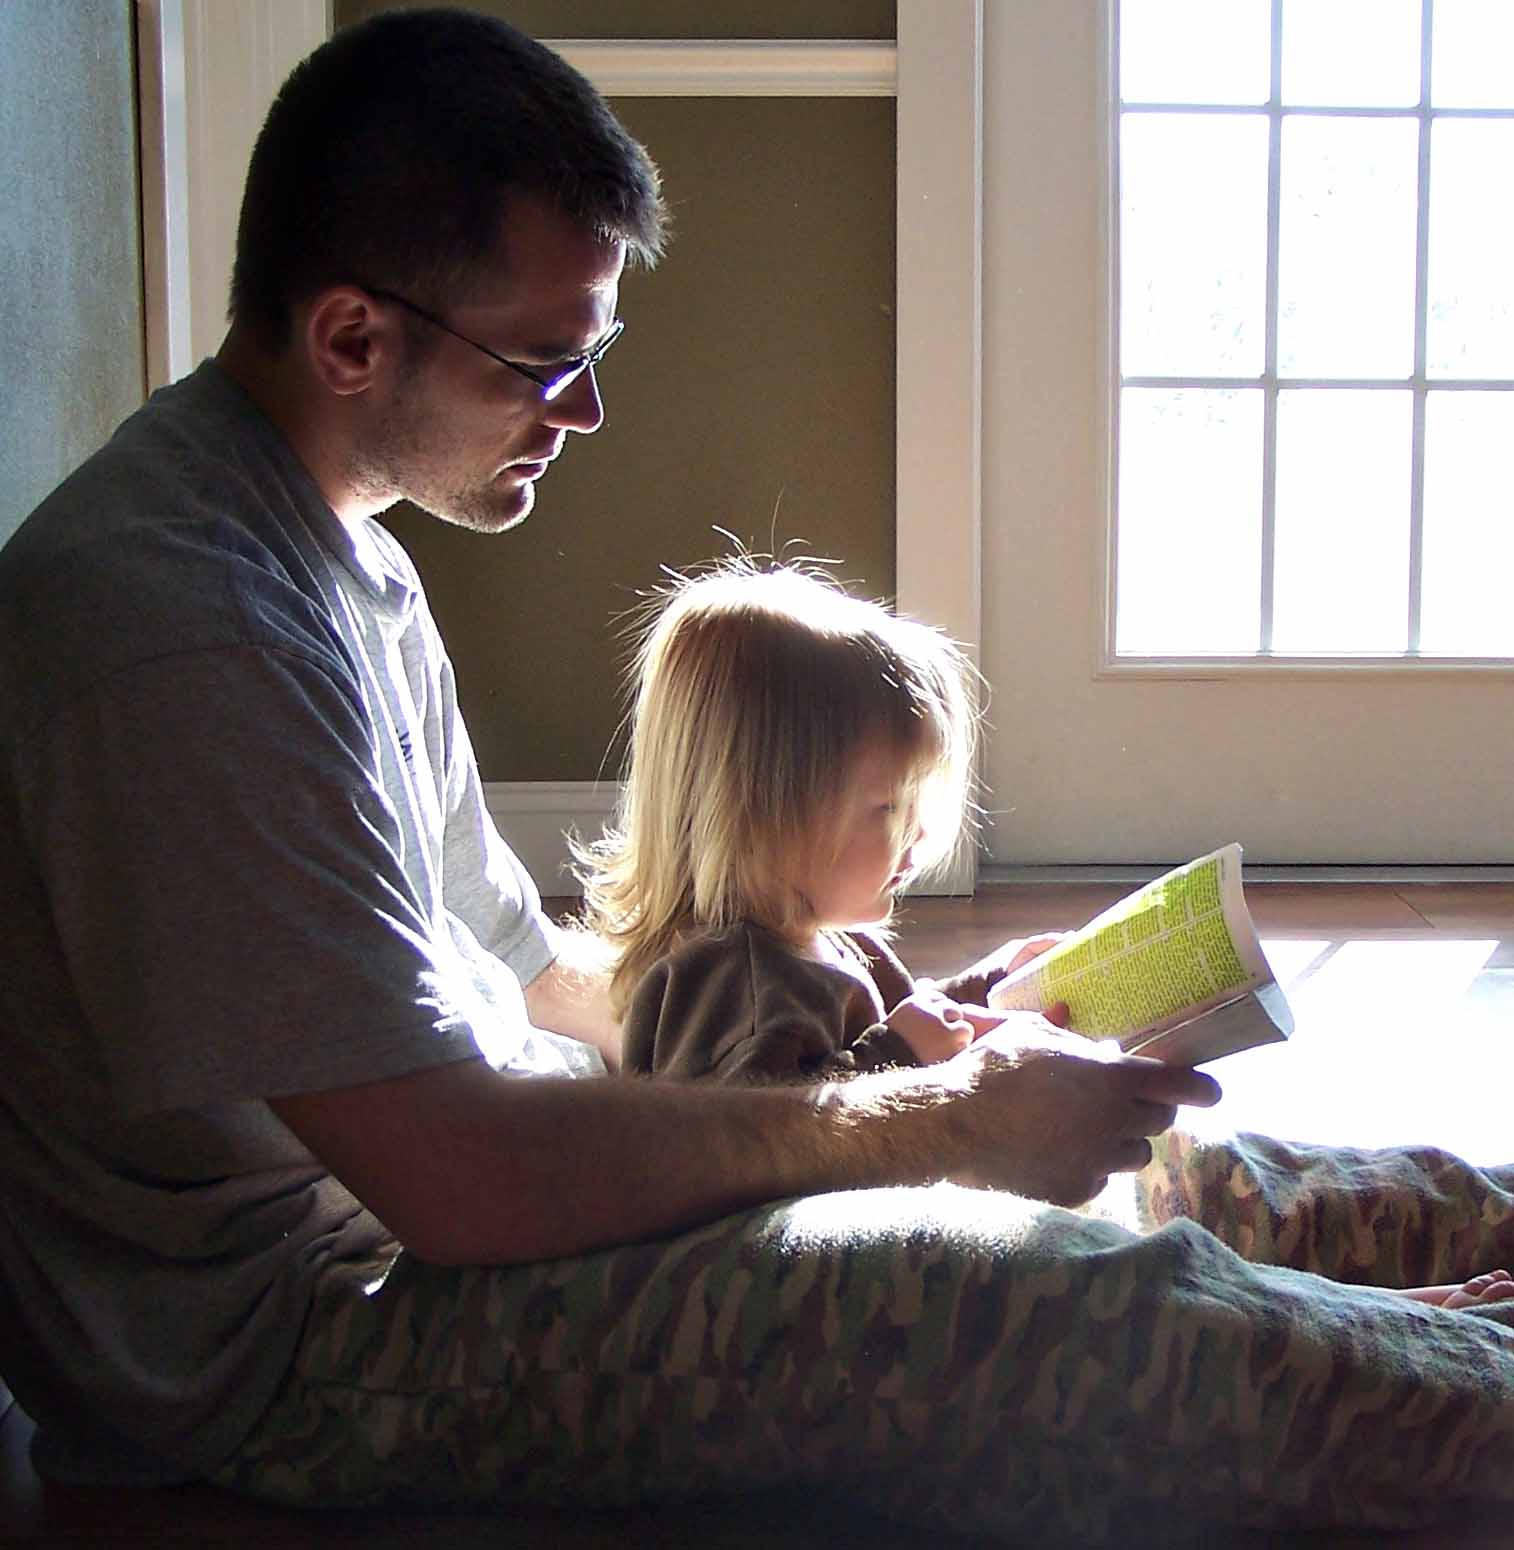 Fathers Love: Pictures Showcasing Father And Daughter Will Melt Your Heart